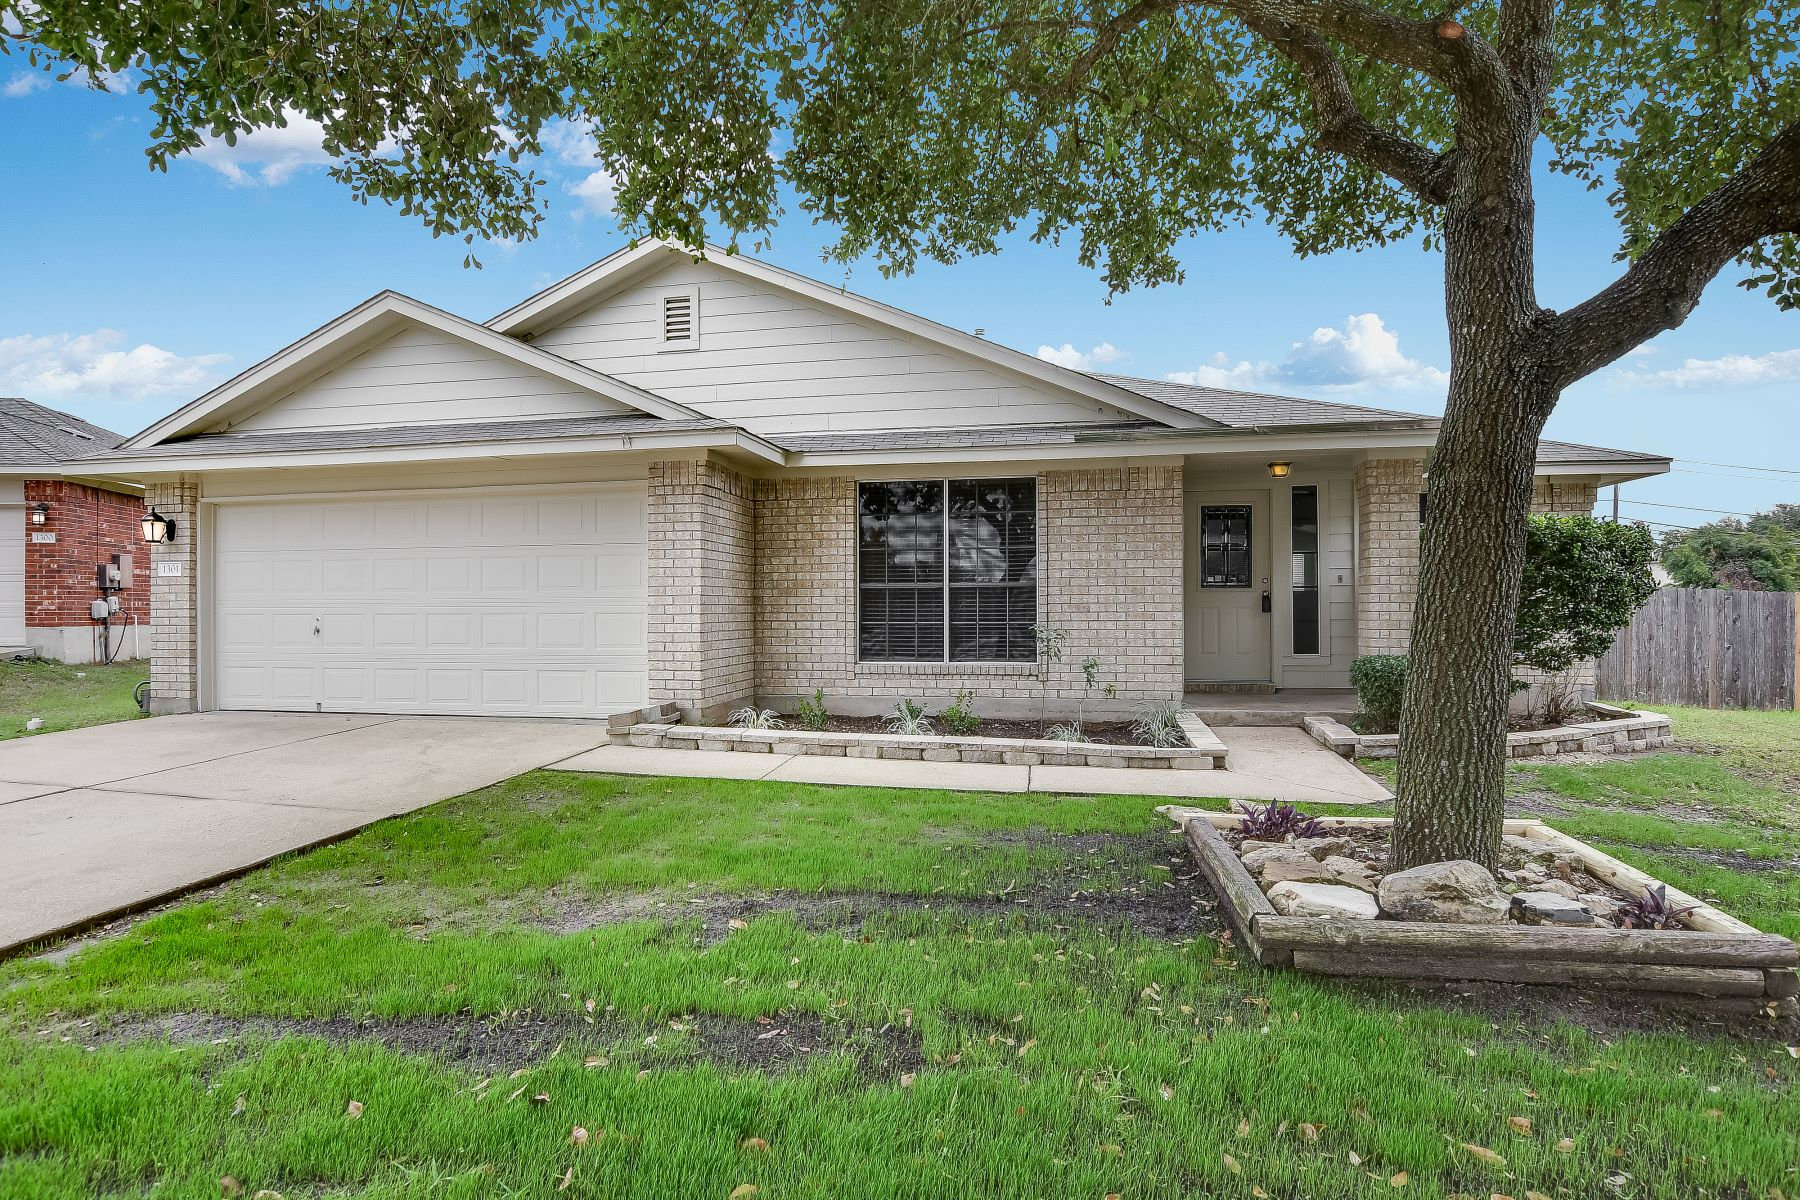 Single Family Homes for Active at 1301 Marsh Harbour Cove, Round Rock, TX 78664 1301 Marsh Harbour Cove Round Rock, Texas 78664 United States